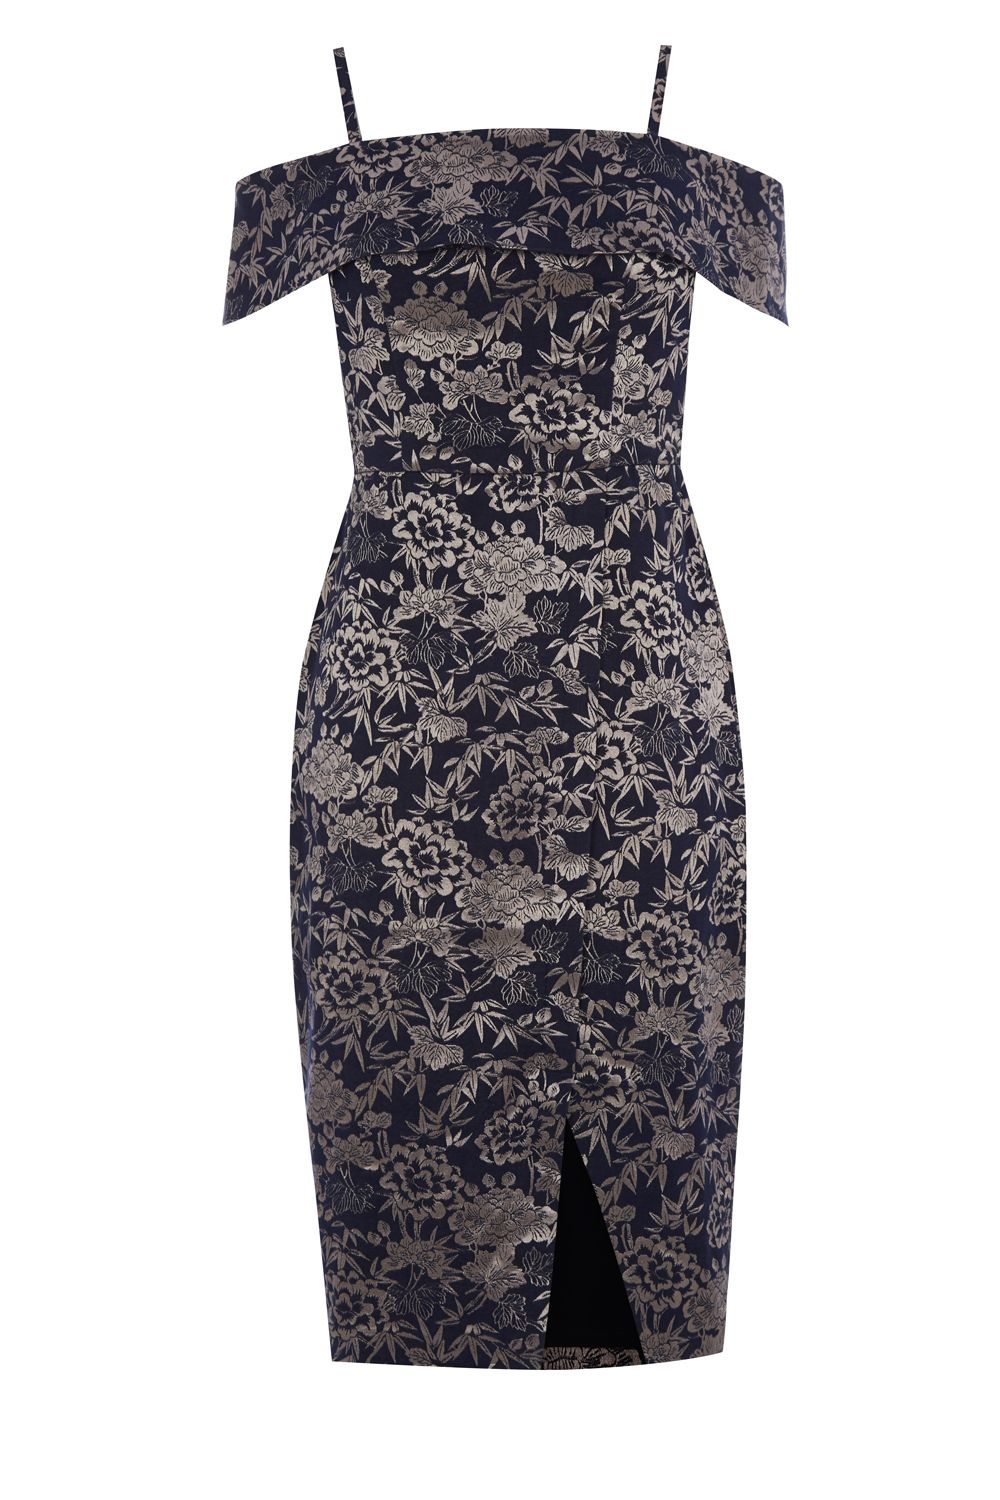 Oasis Jacquard Bardot Pencil Dress, Multi-Coloured